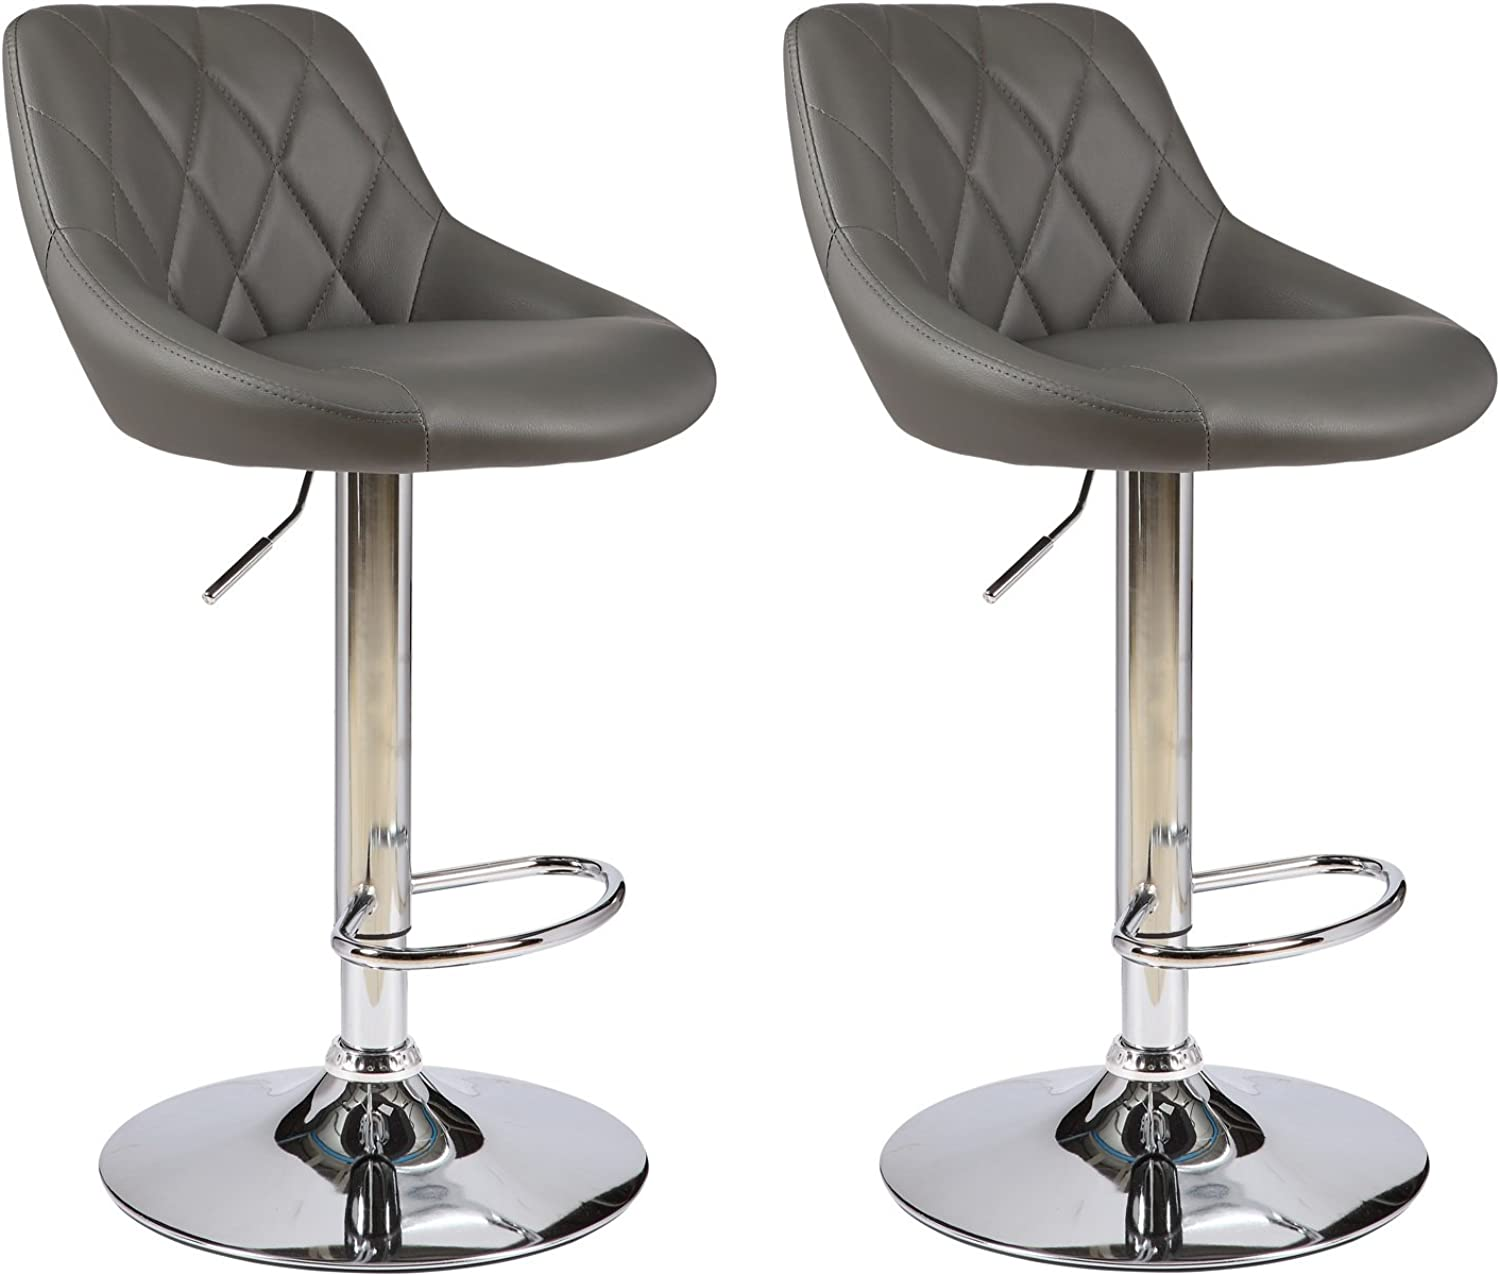 ViscoLogic Series Gallant Height Adjustable Leatherette Diamond Quilted 360 Swivel 22 to 31 inch Bar Stool with Chrome Pole & Base, Base with Hard Plastic for Floor Predection (Set of 2 Stools- Grey)